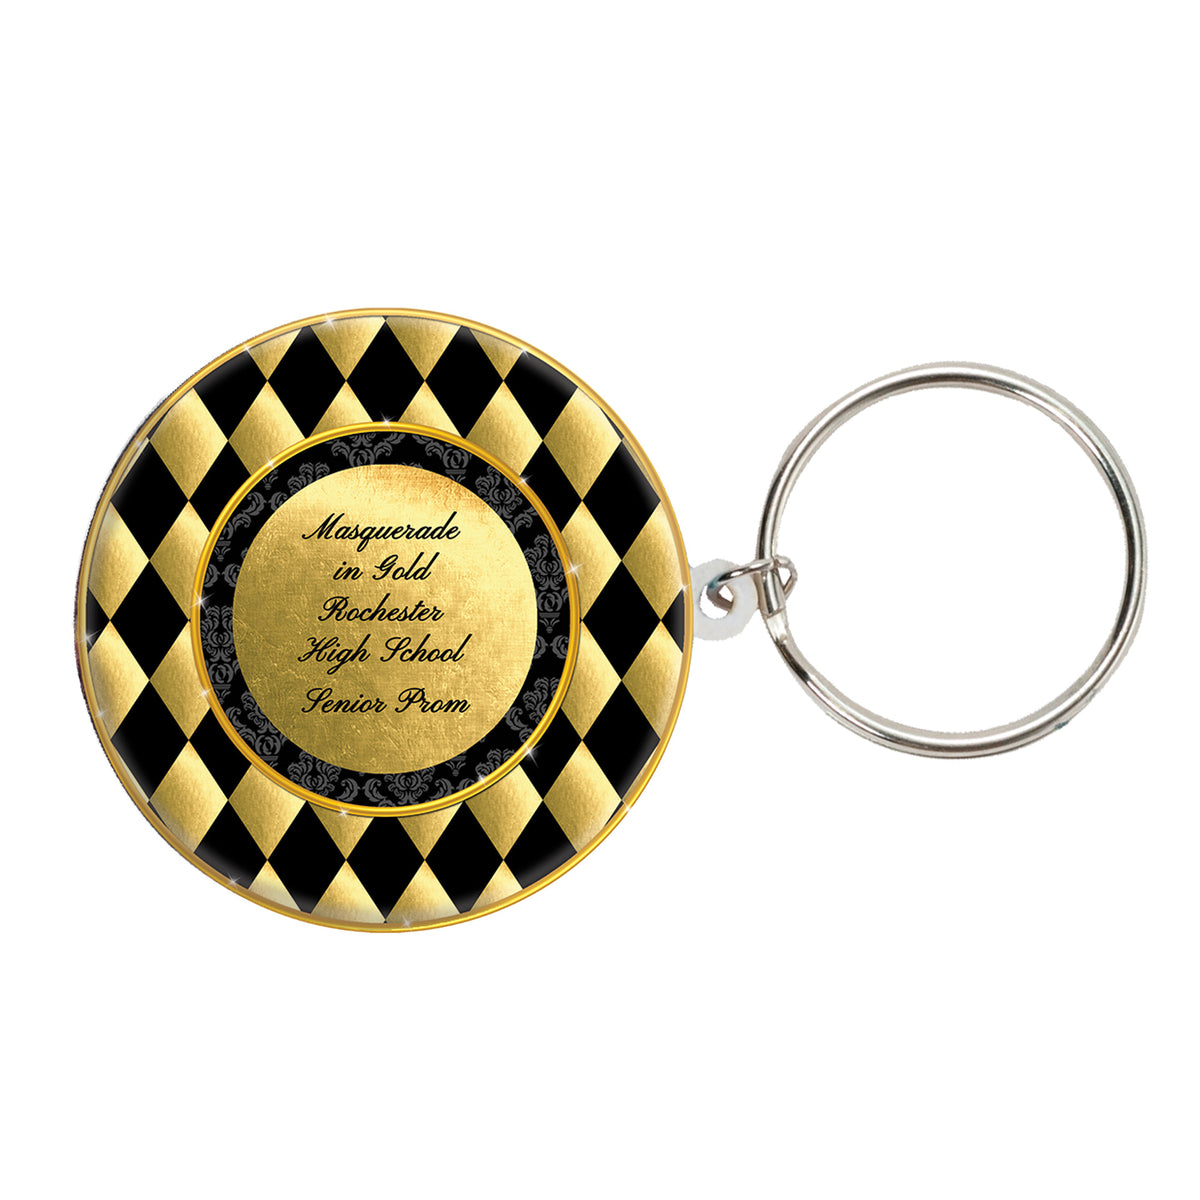 Black & Gold Masquerade Personalized Key Chain